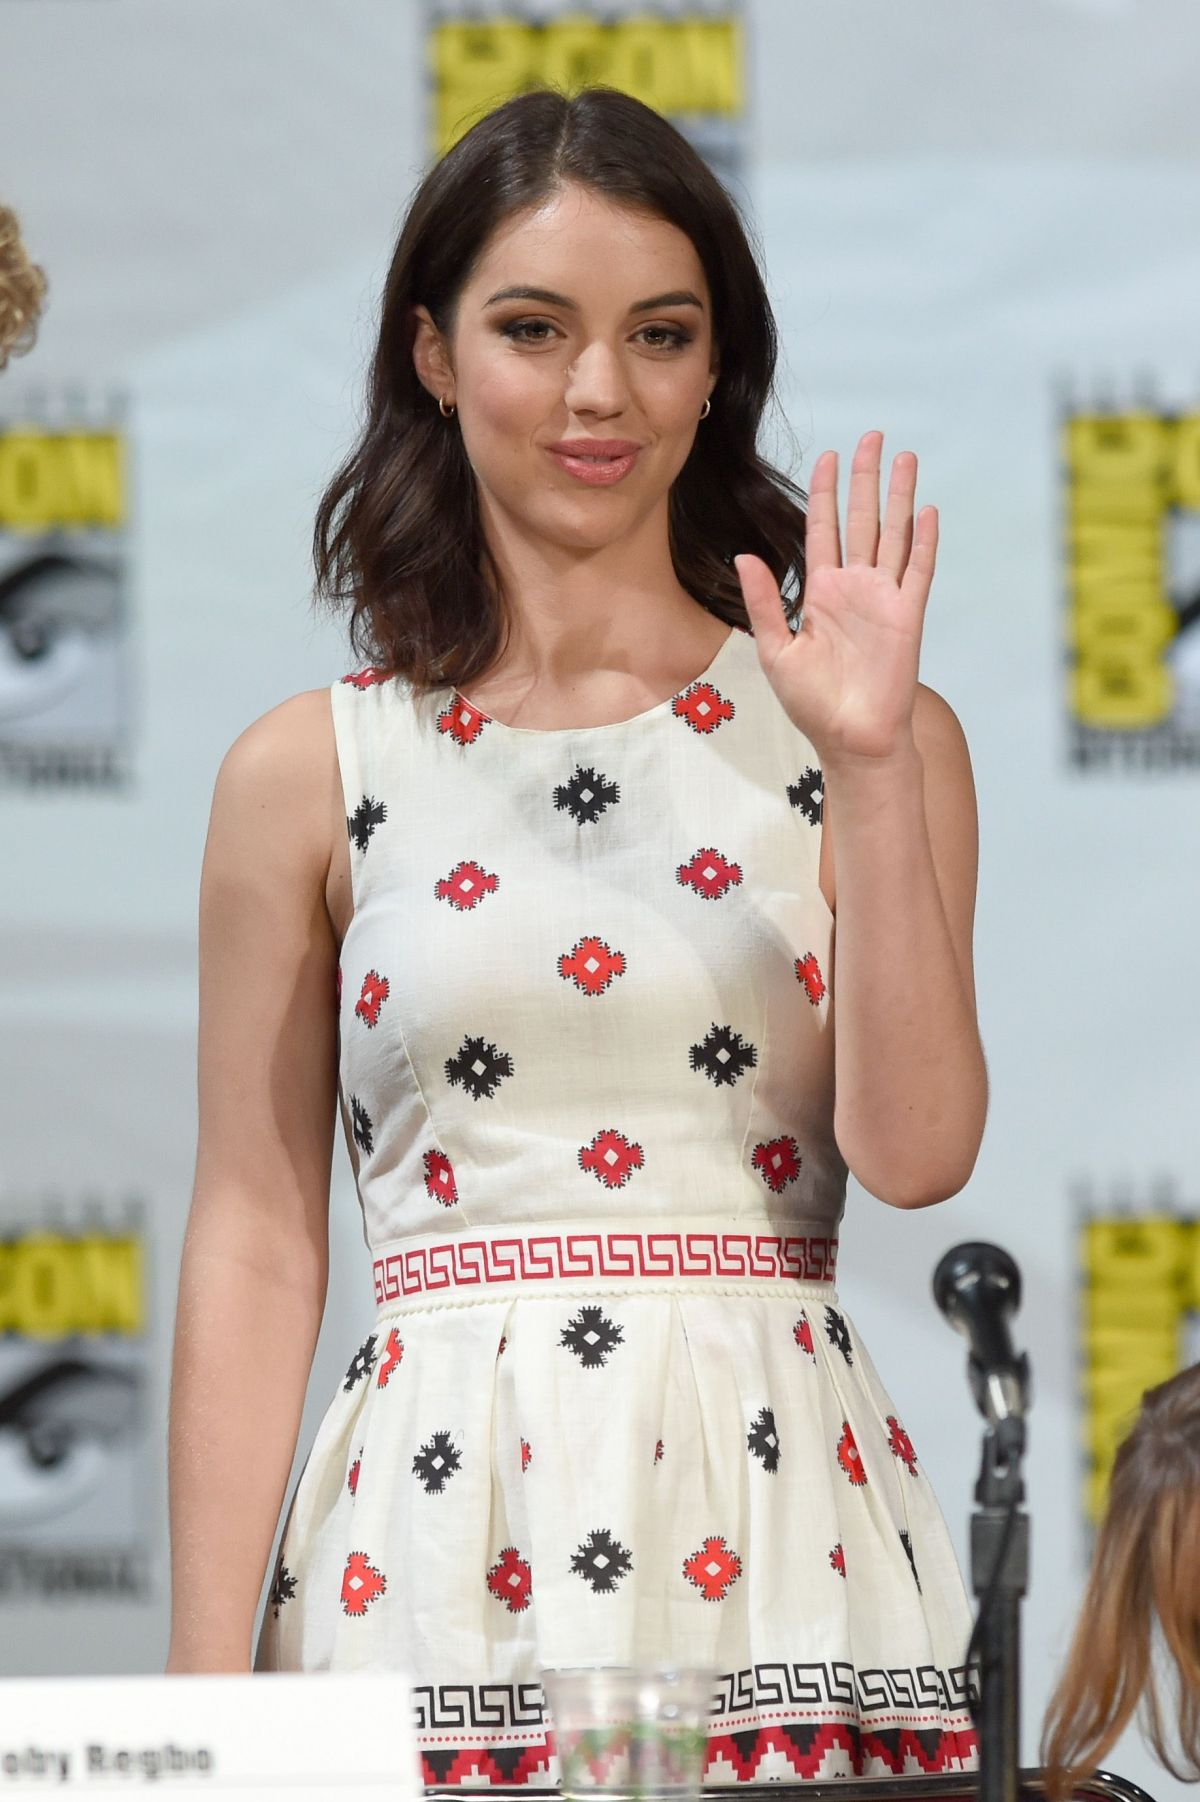 ADELAIDE KANE at CW Reign Panel at Comic-con 2014 in San Diego